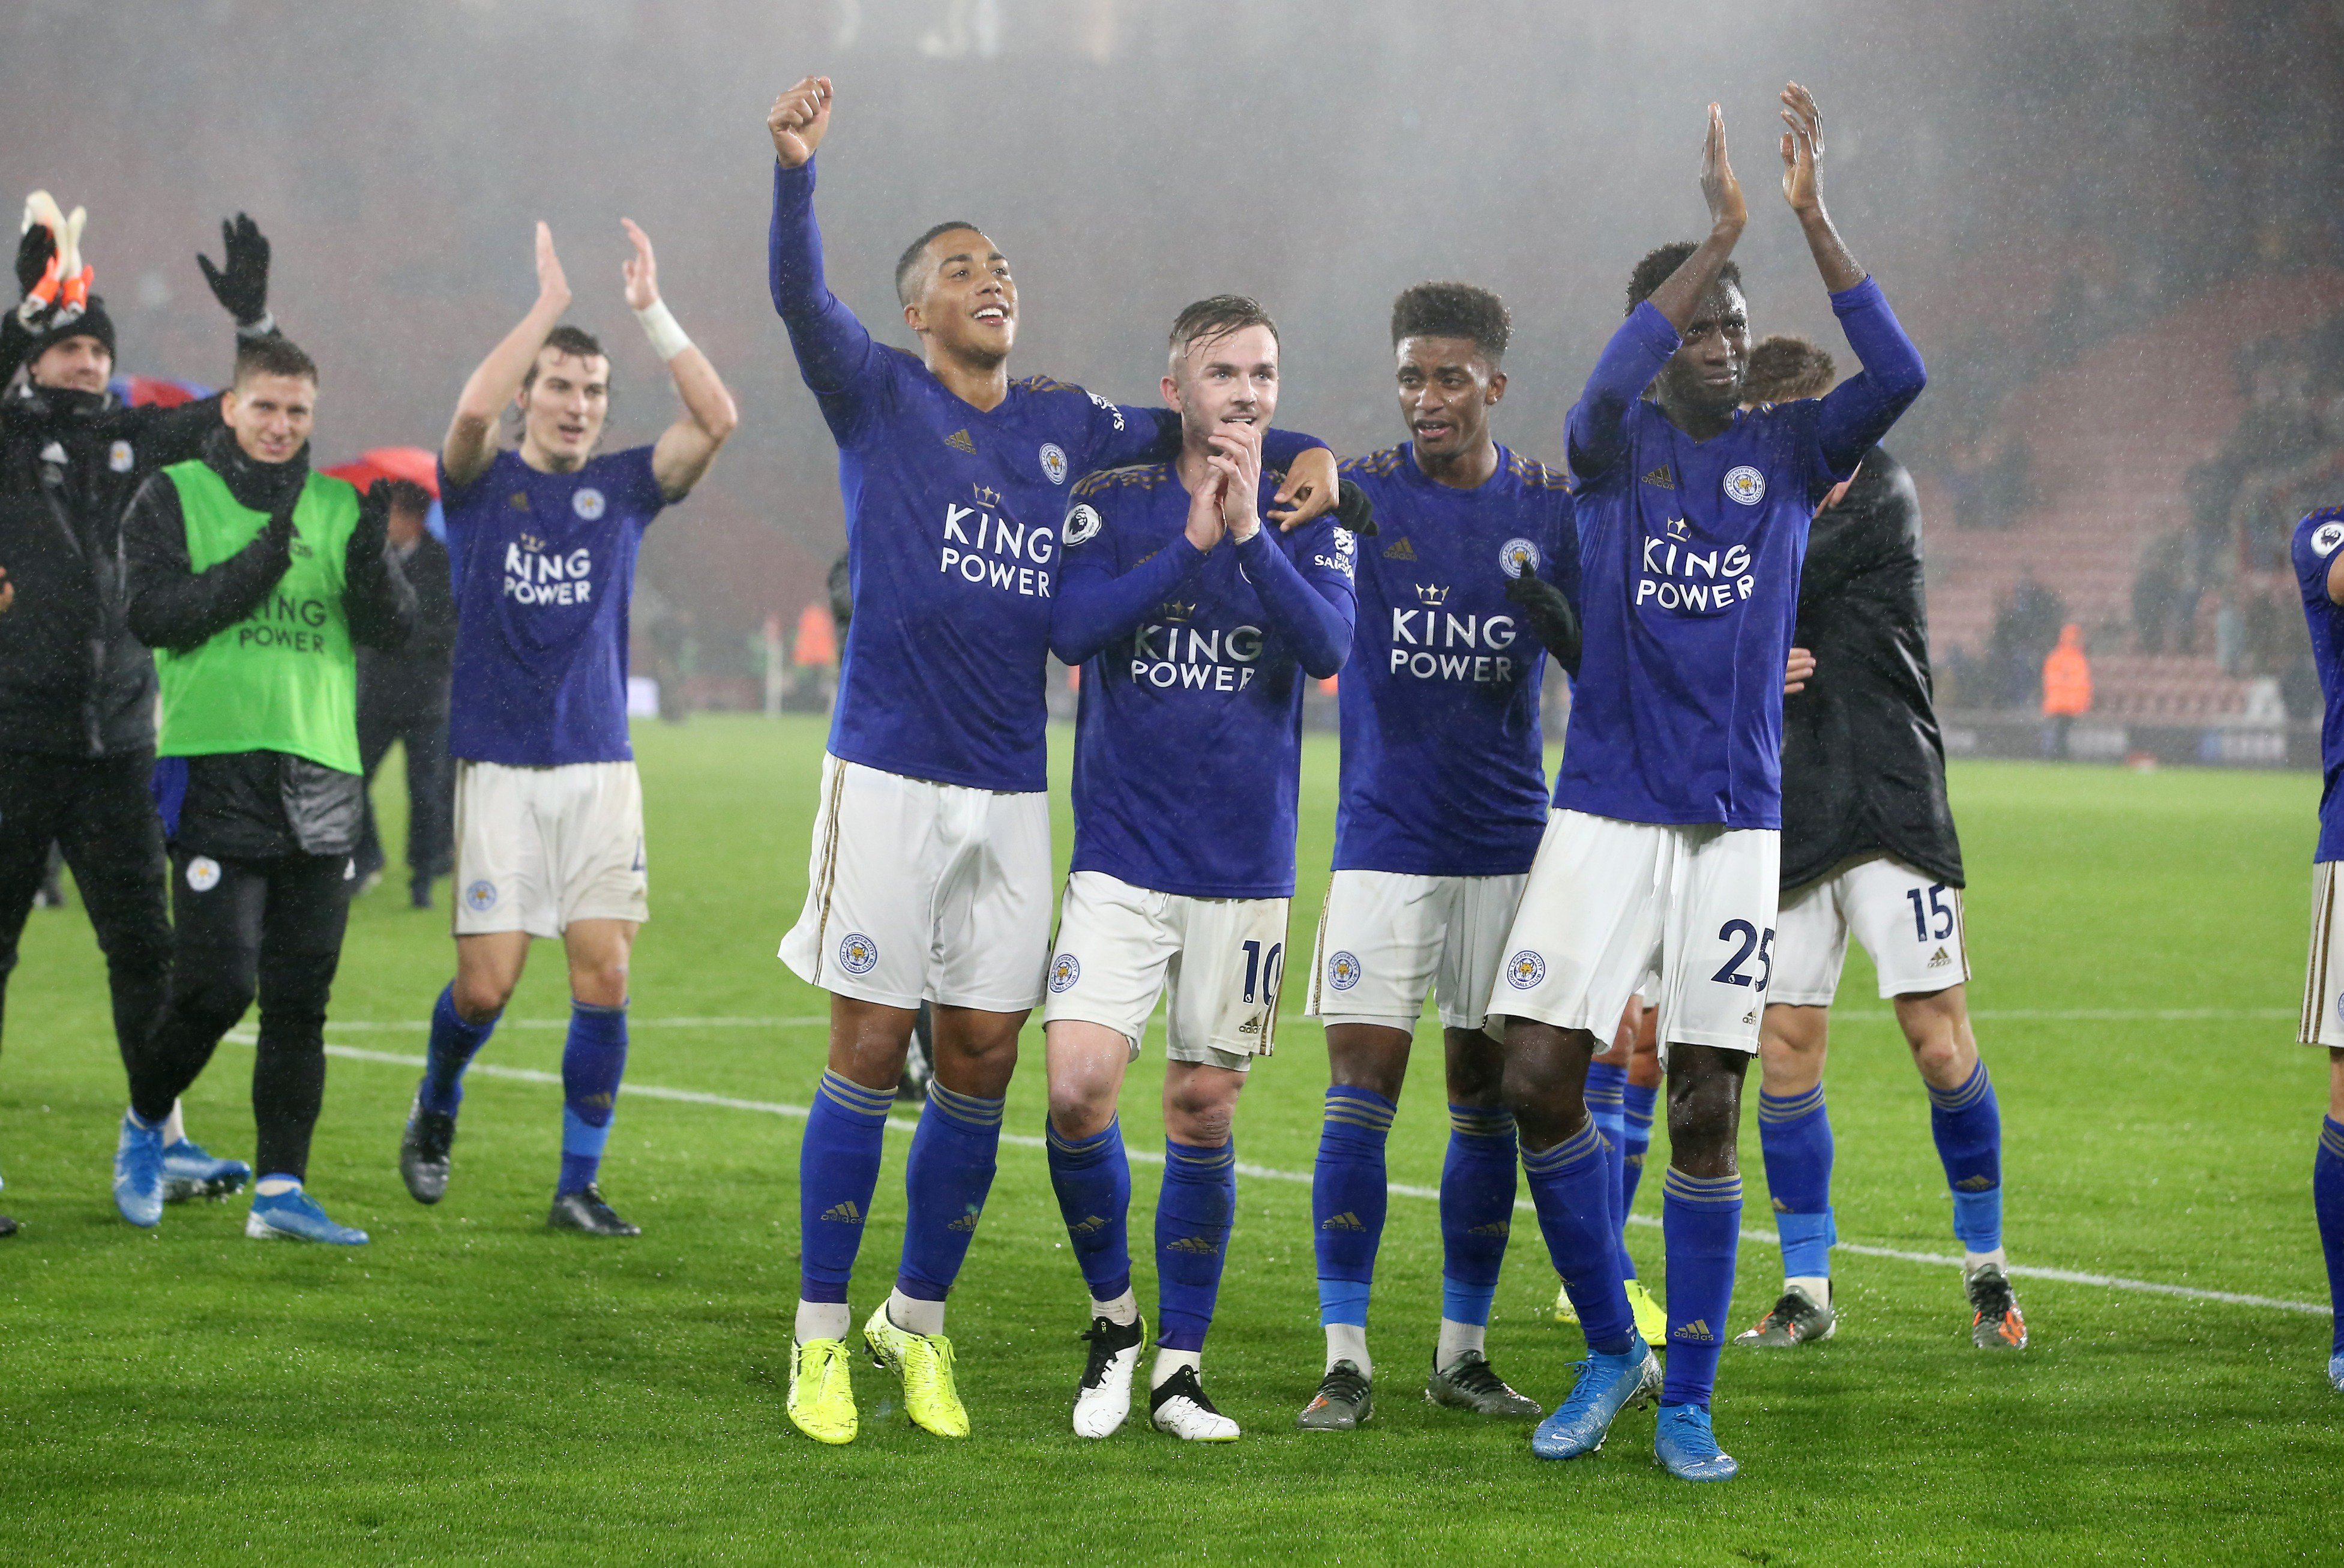 Eagles Roundup: Ndidi In Action As Rampant Leicester Thrash Sotton; Chukuweze Impresses In Villareal's Home Win